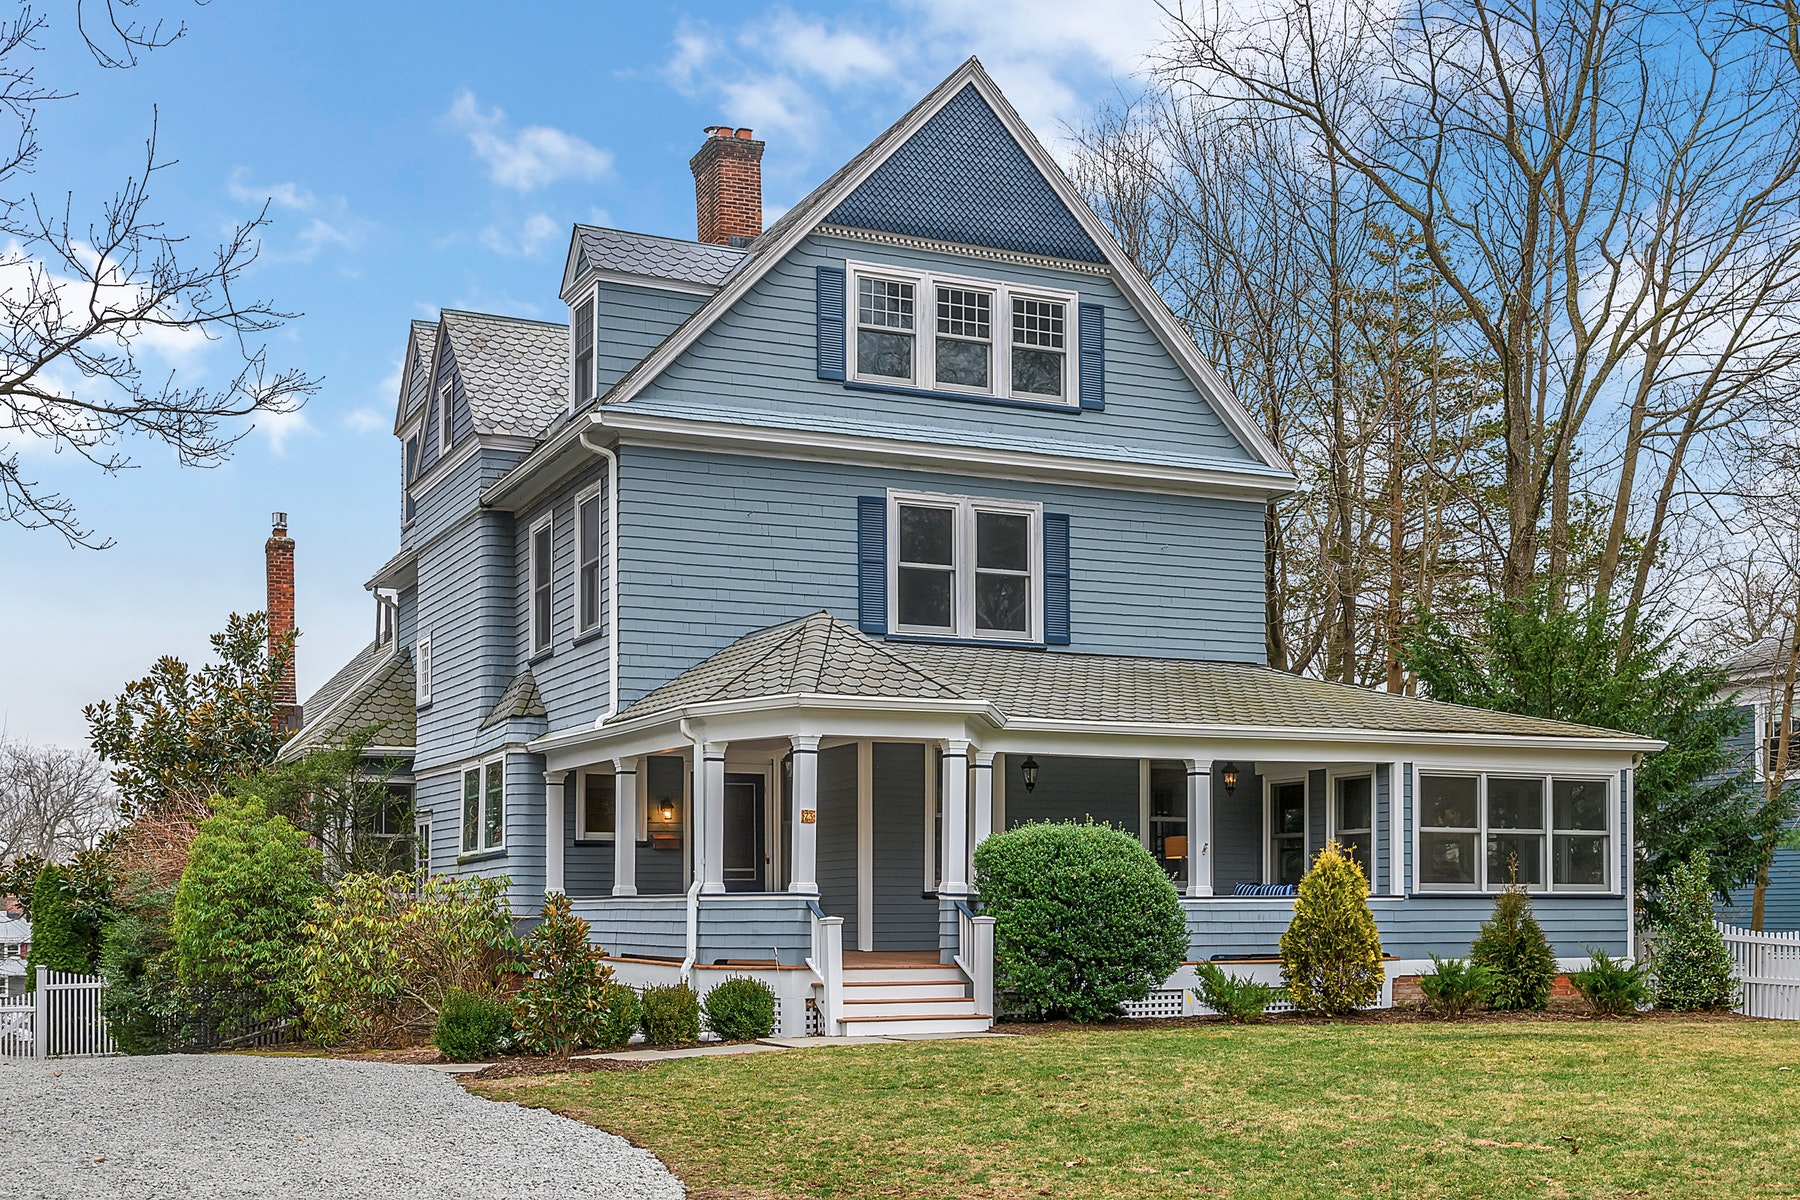 Single Family Homes for Sale at Enchanting Victorian 73 Highland Avenue Glen Ridge, New Jersey 07028 United States